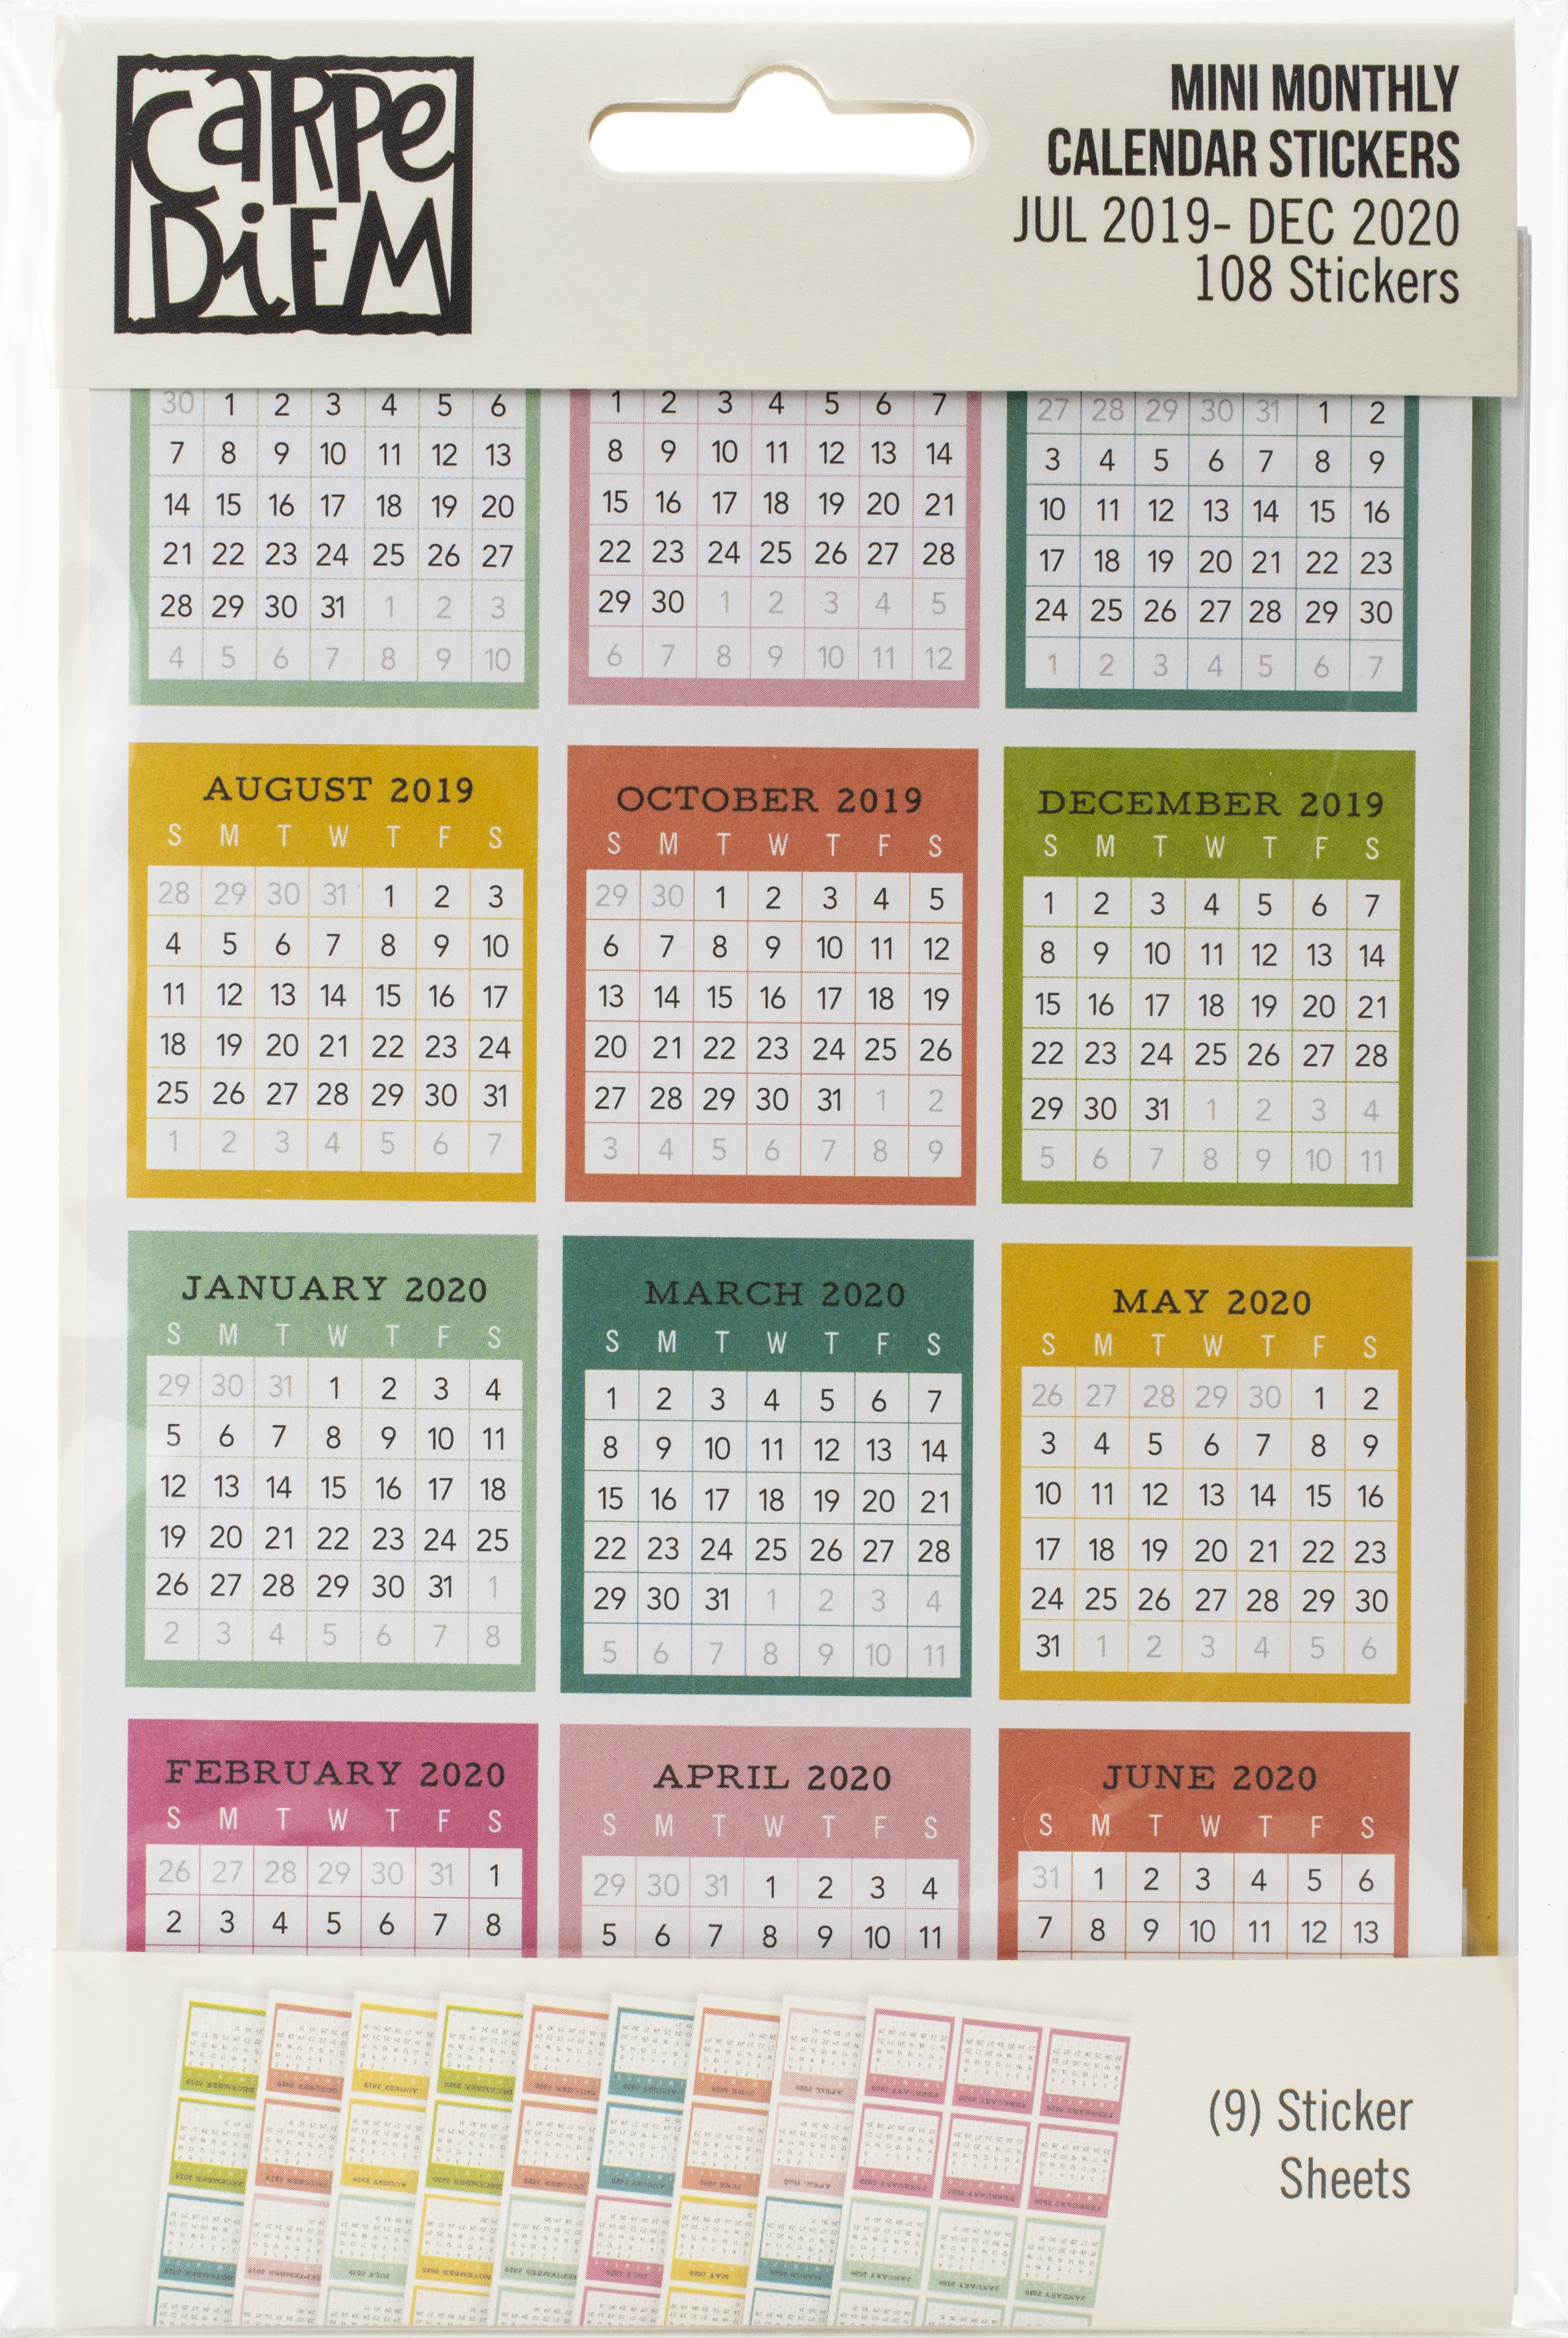 Carpe Diem Dated Mini Calendar Stickers 4X6 9/Pkg-Monthly, July 2019-December ...